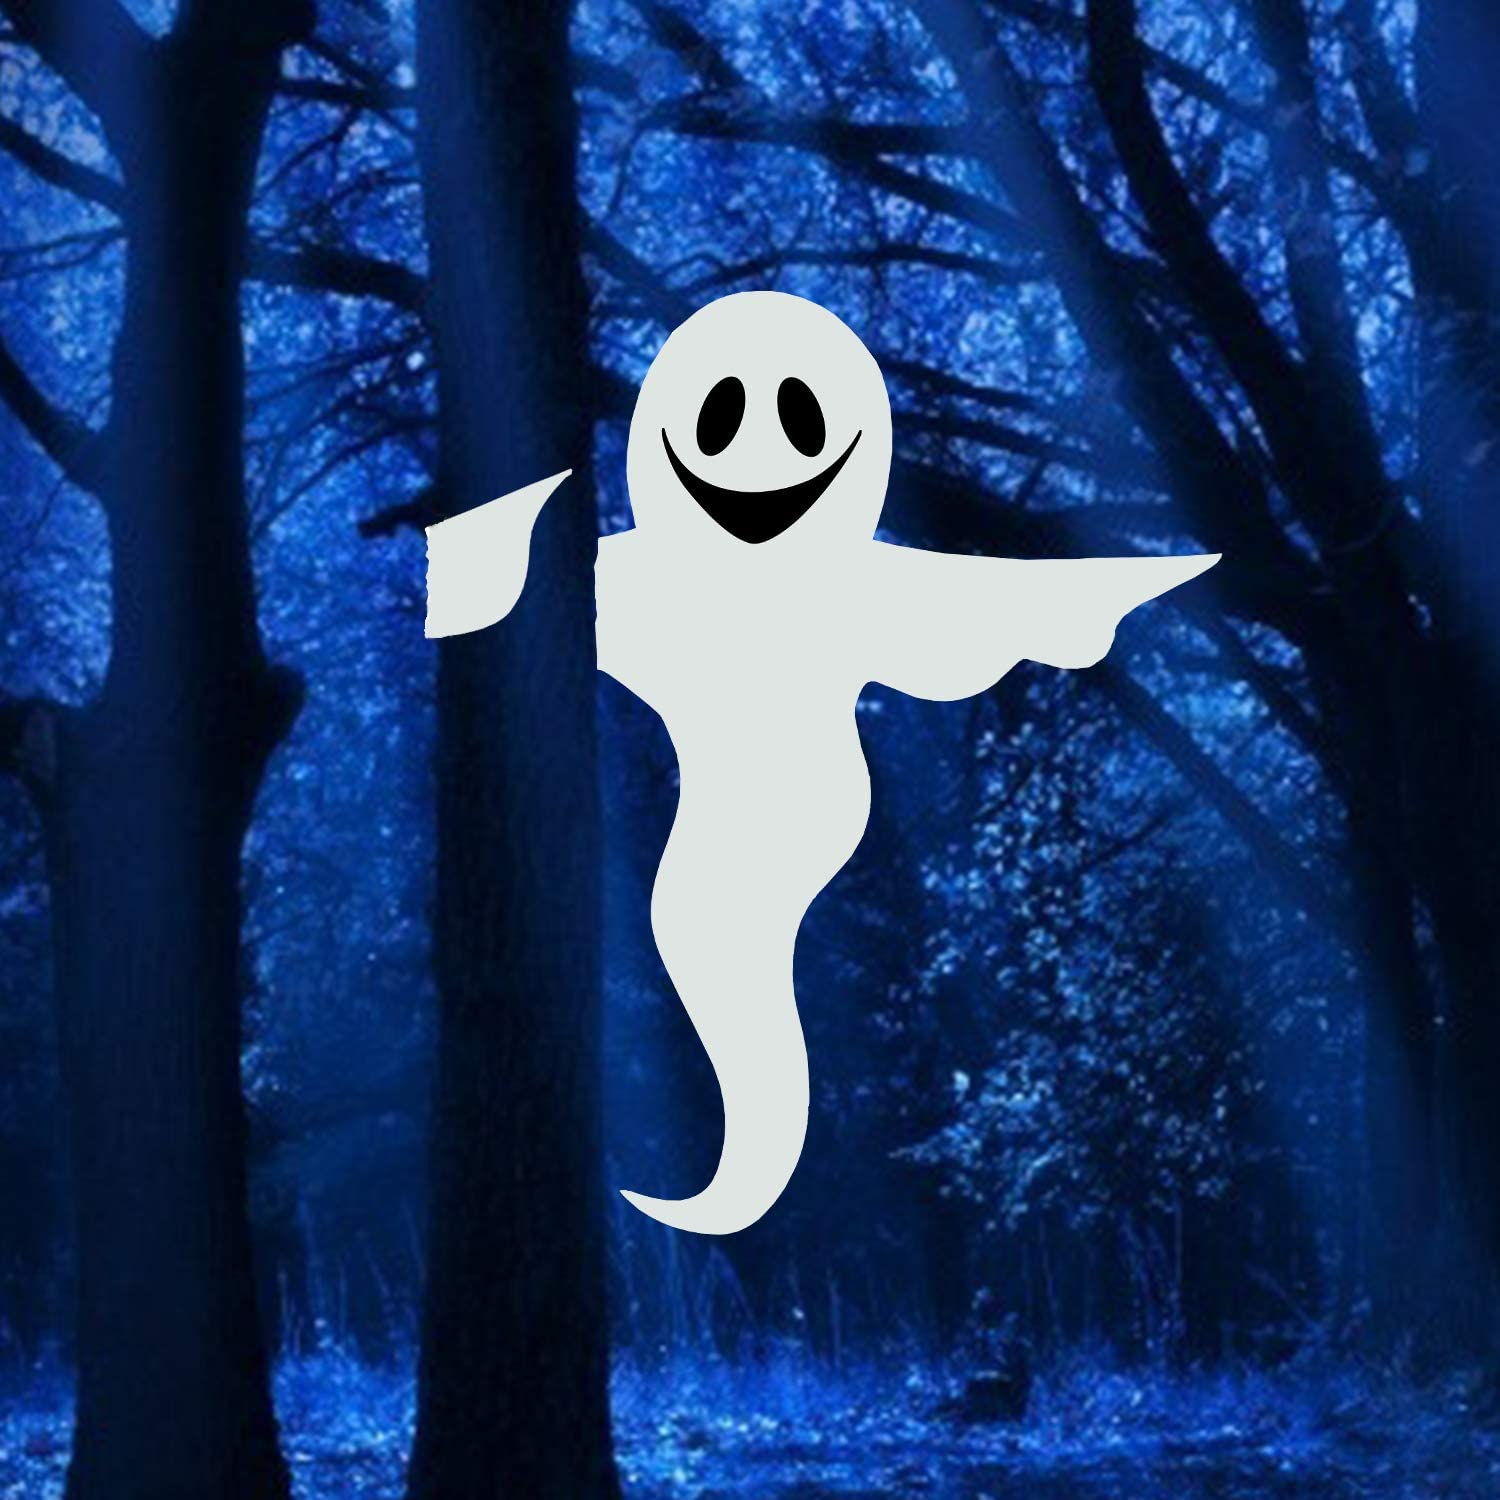 VEYLIN 53in Halloween Bendable Tree Wrap Ghost, White Smiling Friendly Ghost for Outdoor Yard Decoration